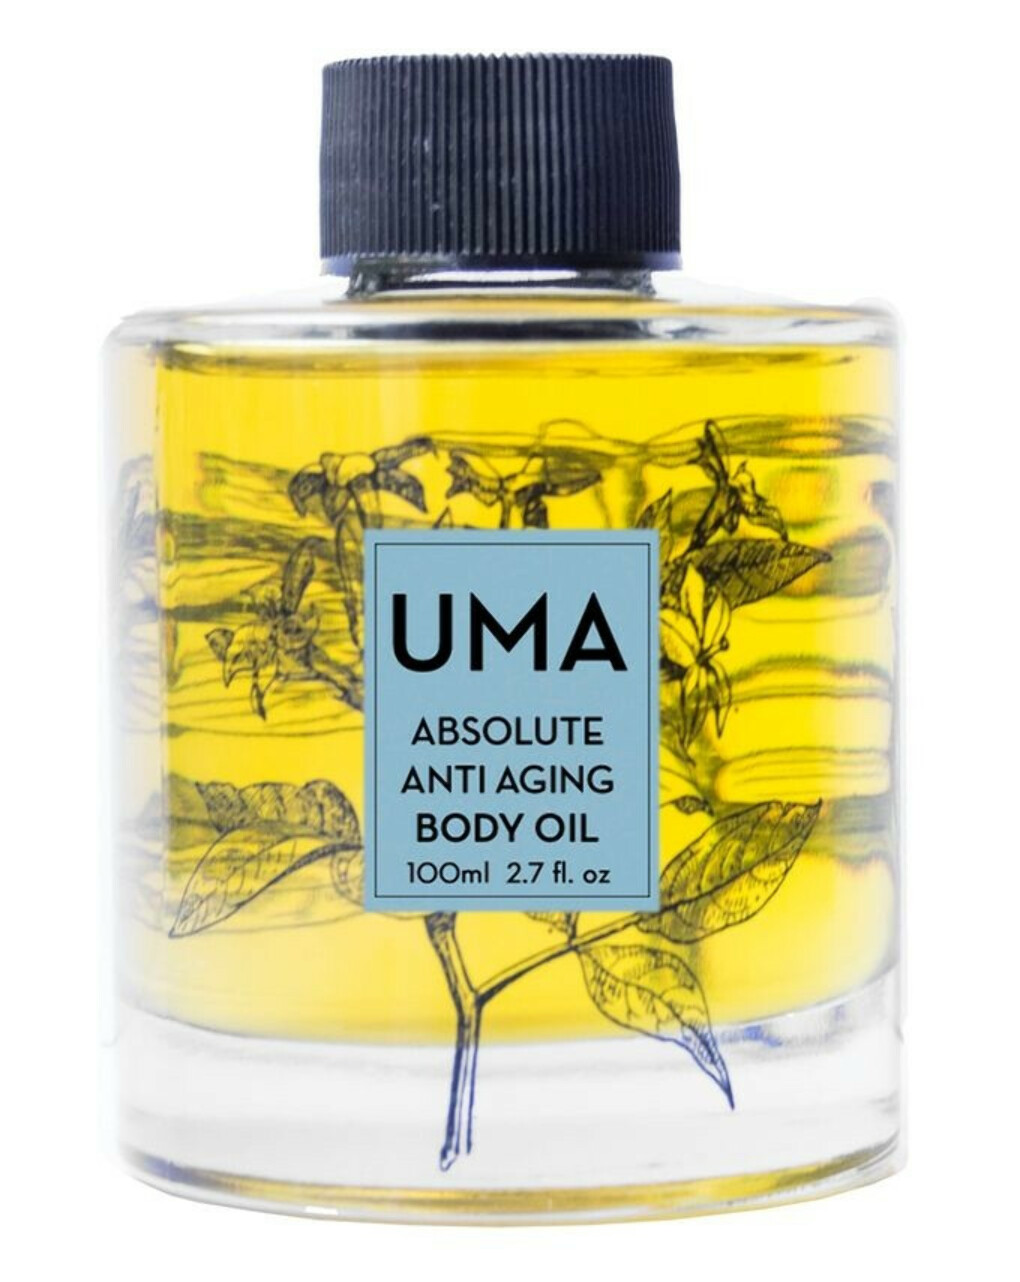 UMA Absolute Anti Aging Body Oil( 100ml )